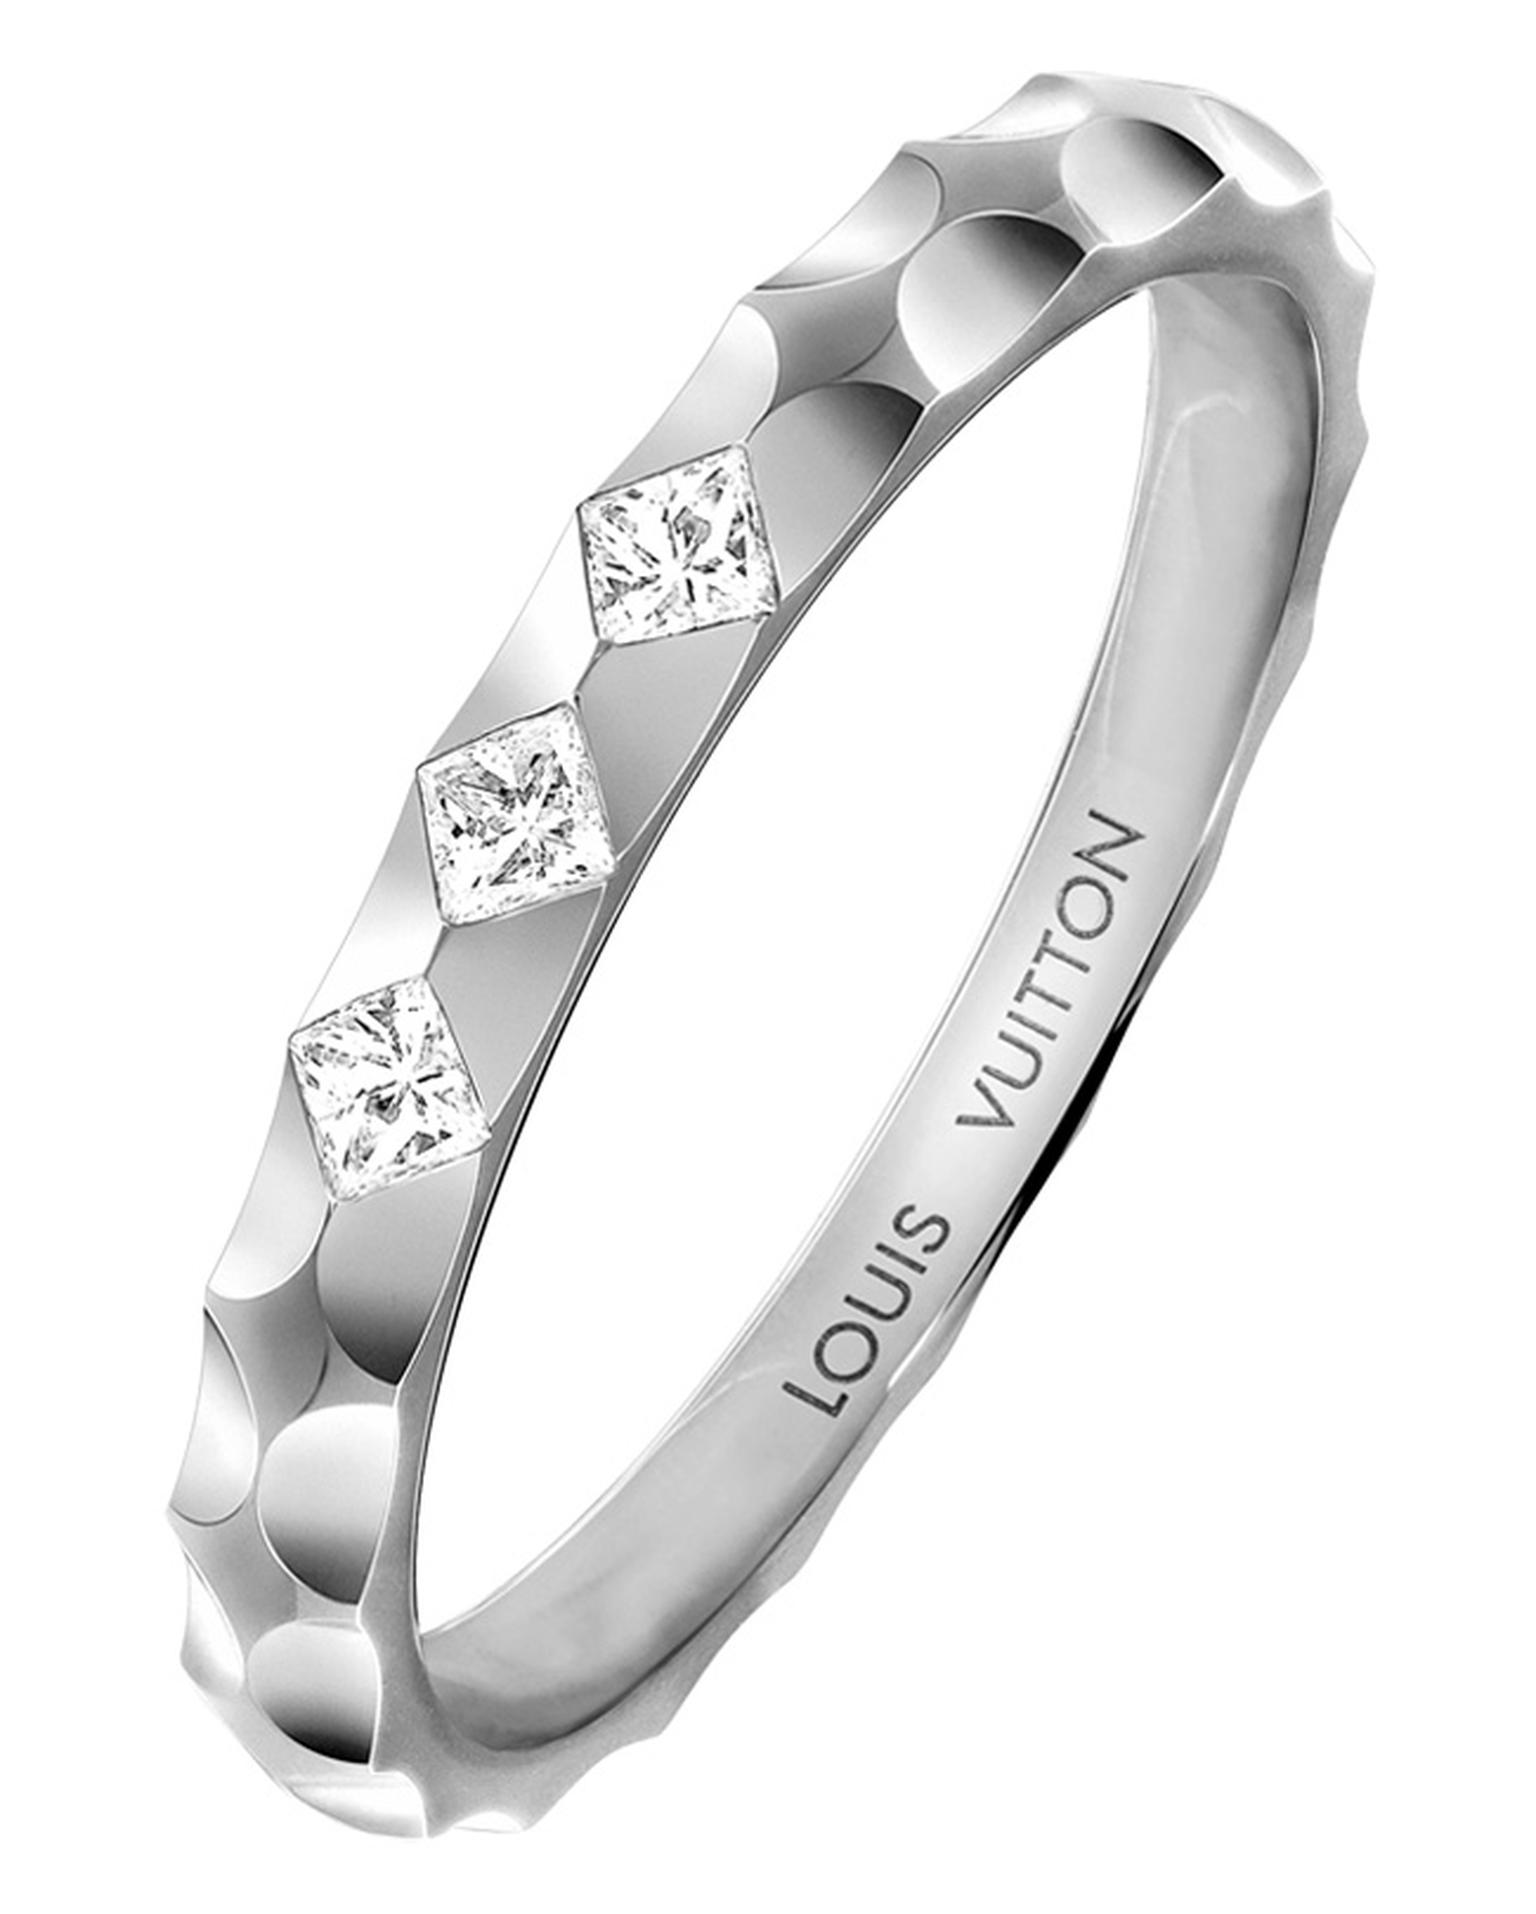 Louis Vuitton Monogram Infini wedding ring_20130830_Main